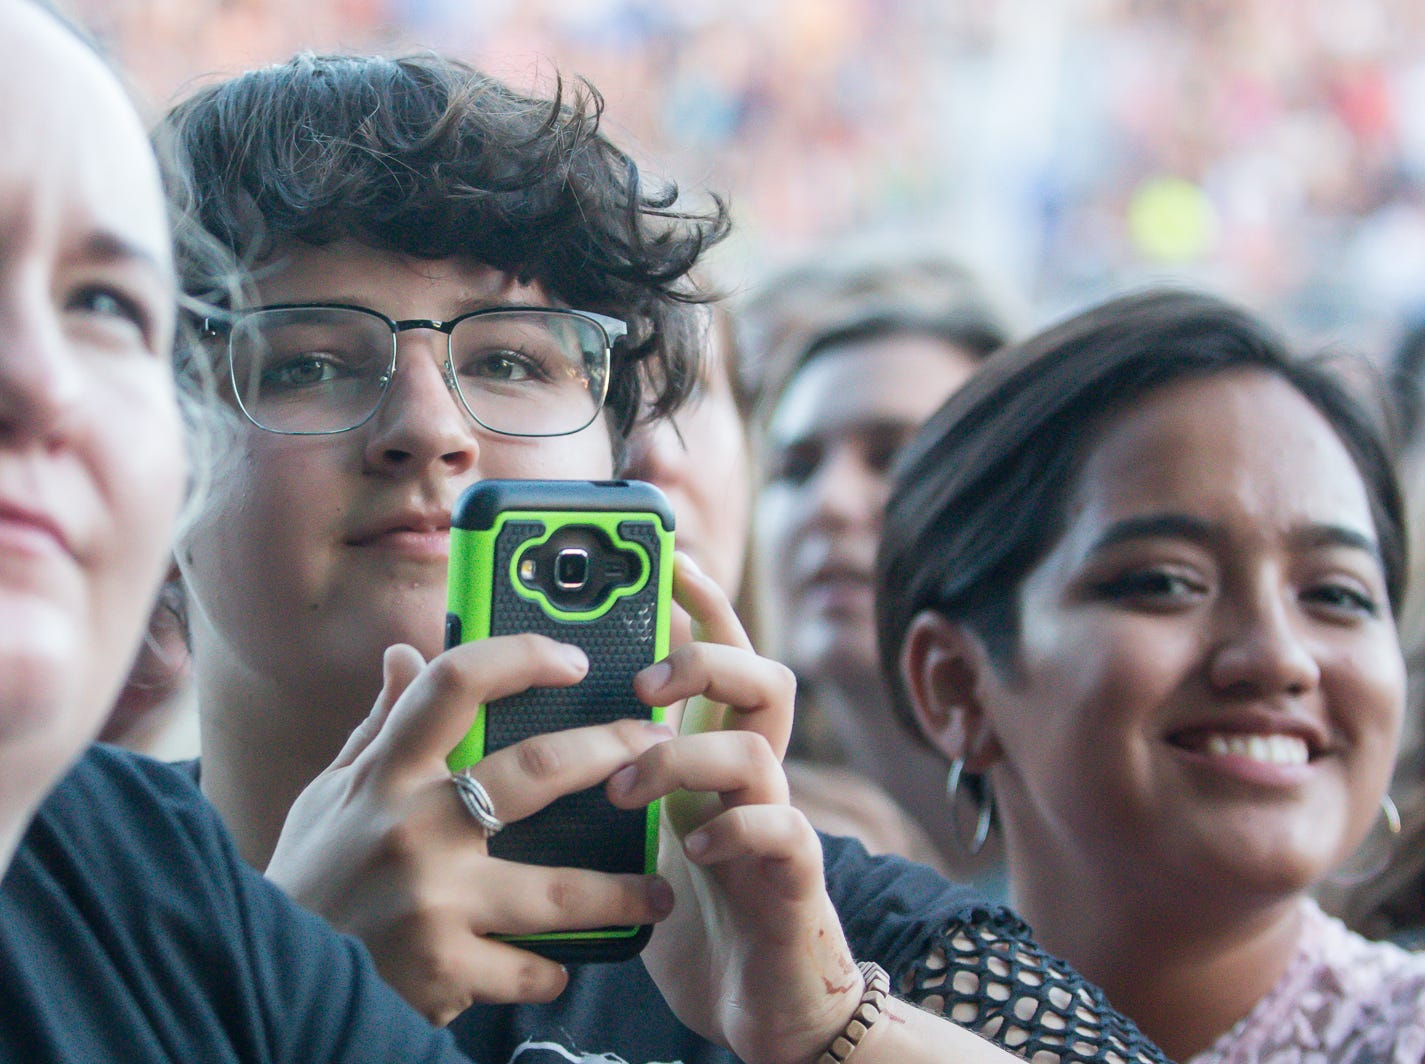 Fans enjoy Grace VanderWaal's opening performance at the Wharf Amphitheater in Orange Beach on Tuesday, August 7, 2018, during Imagine Dragons' Evolve World Tour.